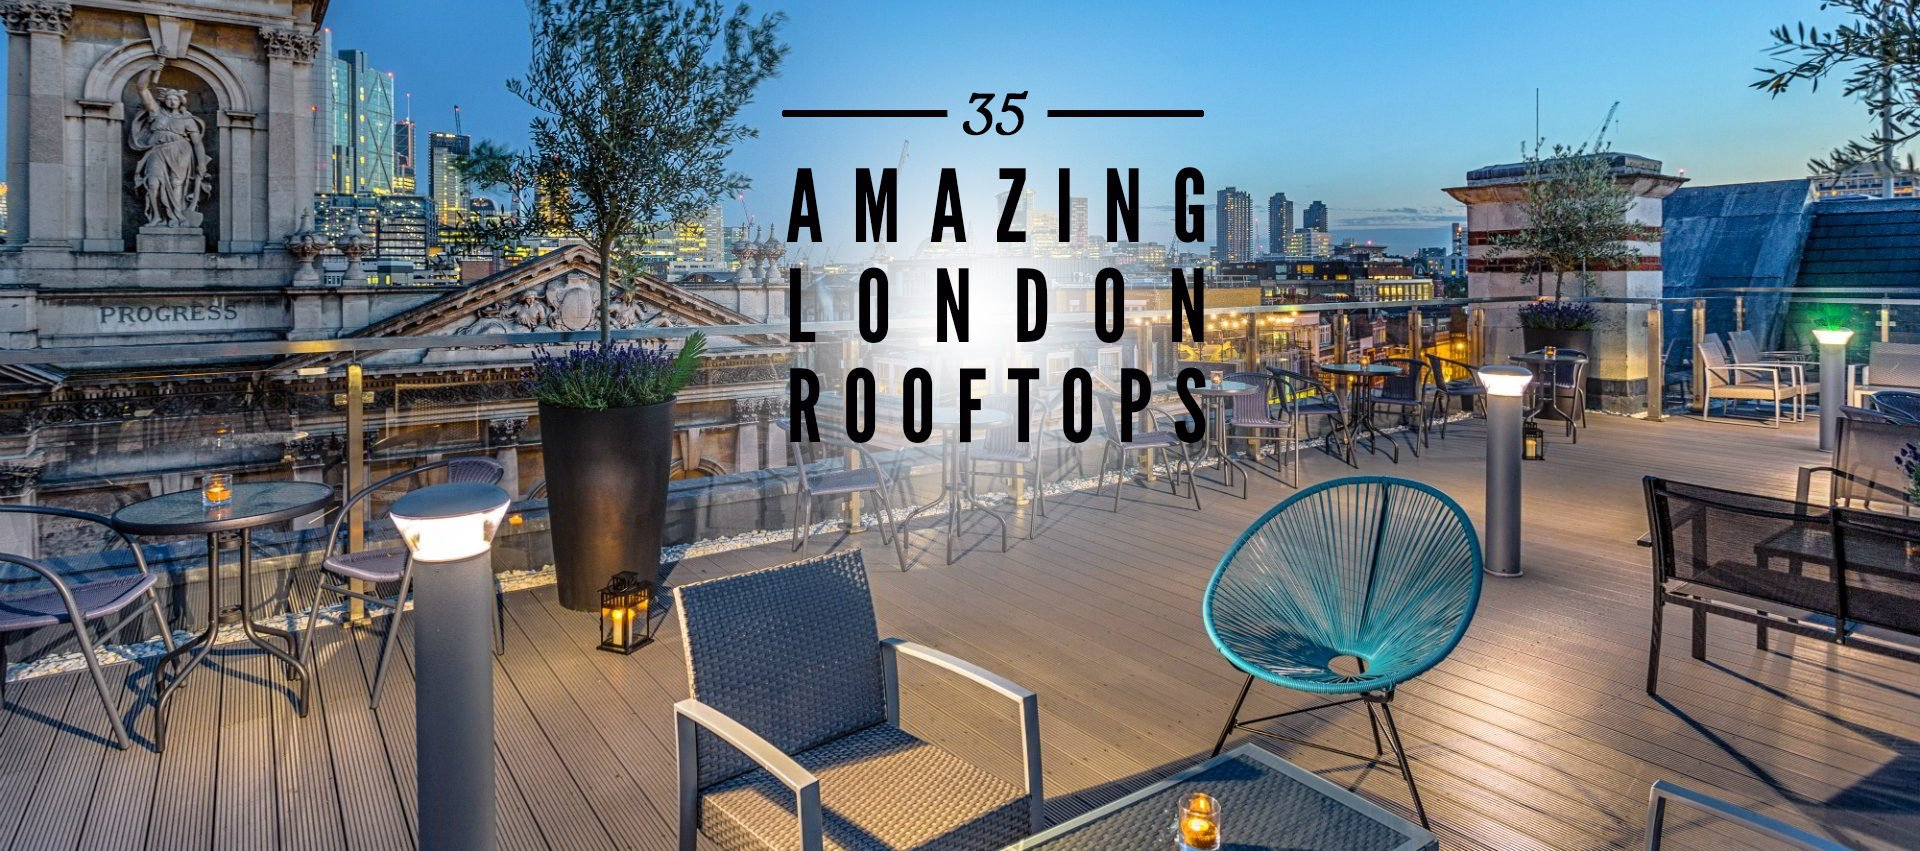 The Ultimate London Rooftop Bar Guide